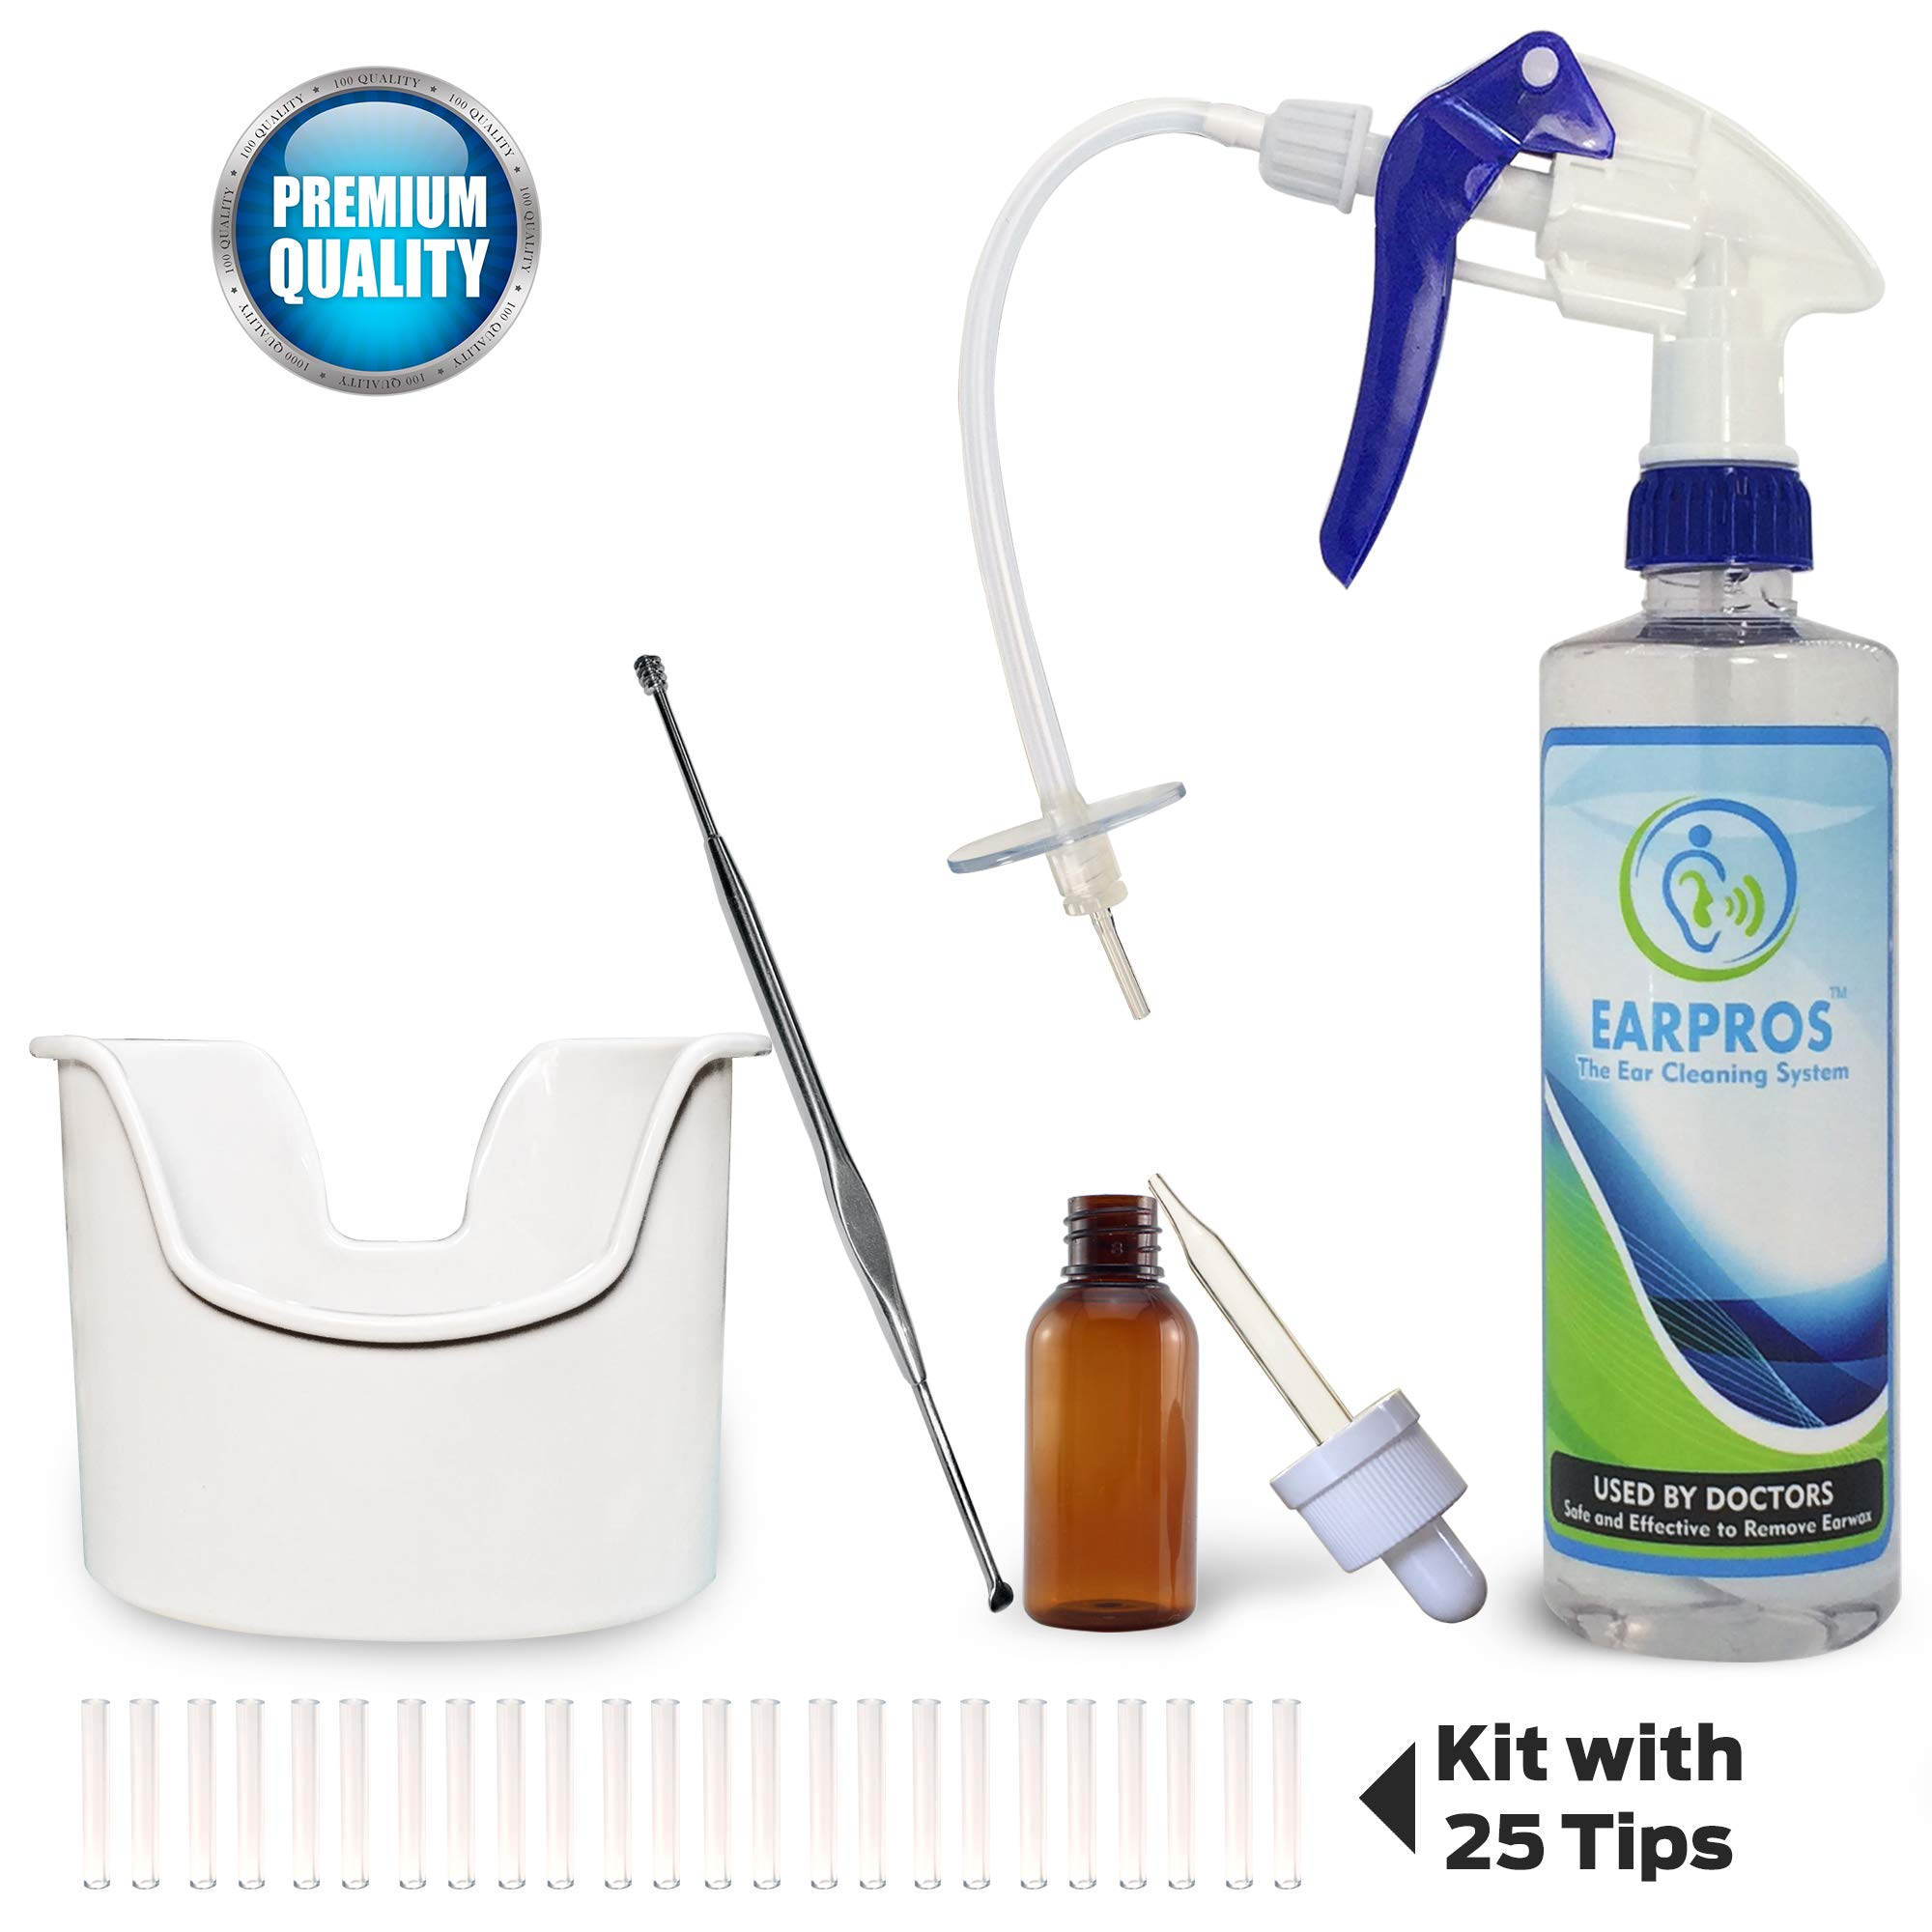 EARPROS Ear Cleaning System with Accessories 25 Tips Included Ear Washer Bottle Ear Wax Removal Kit (Blue)